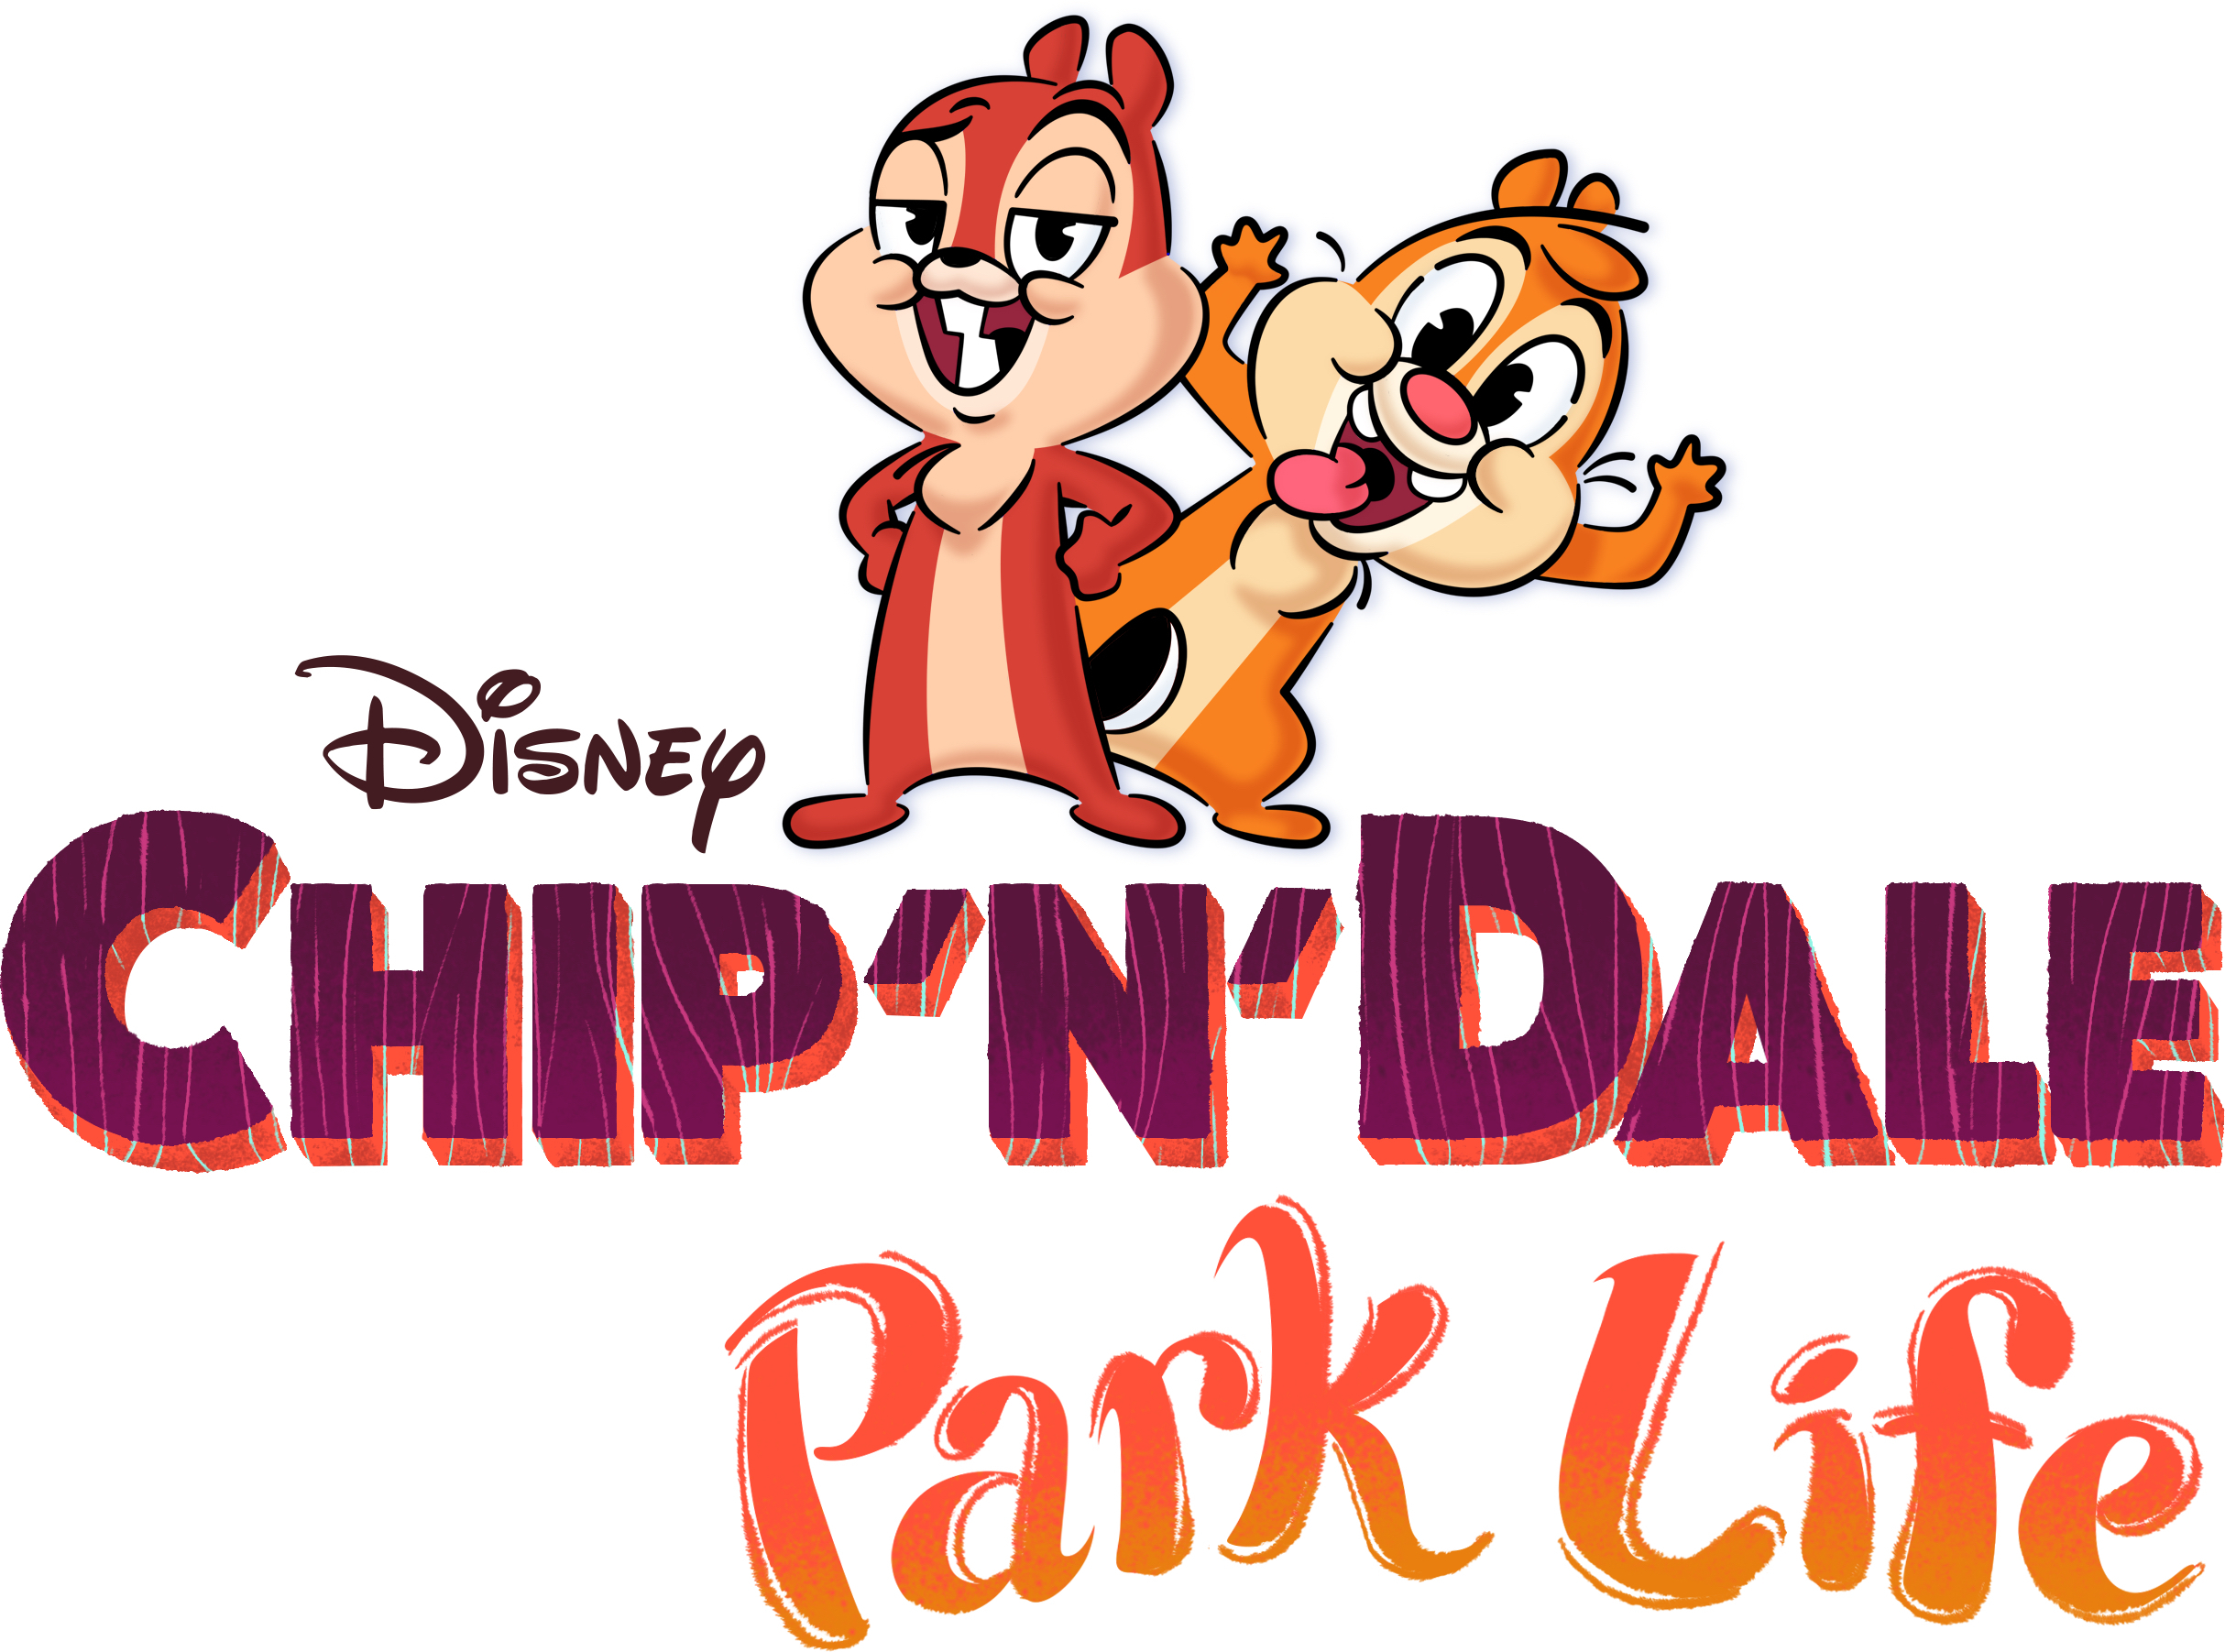 Chip 'N' Dale: Park Life Disney Plus, release date, history | What to Watch